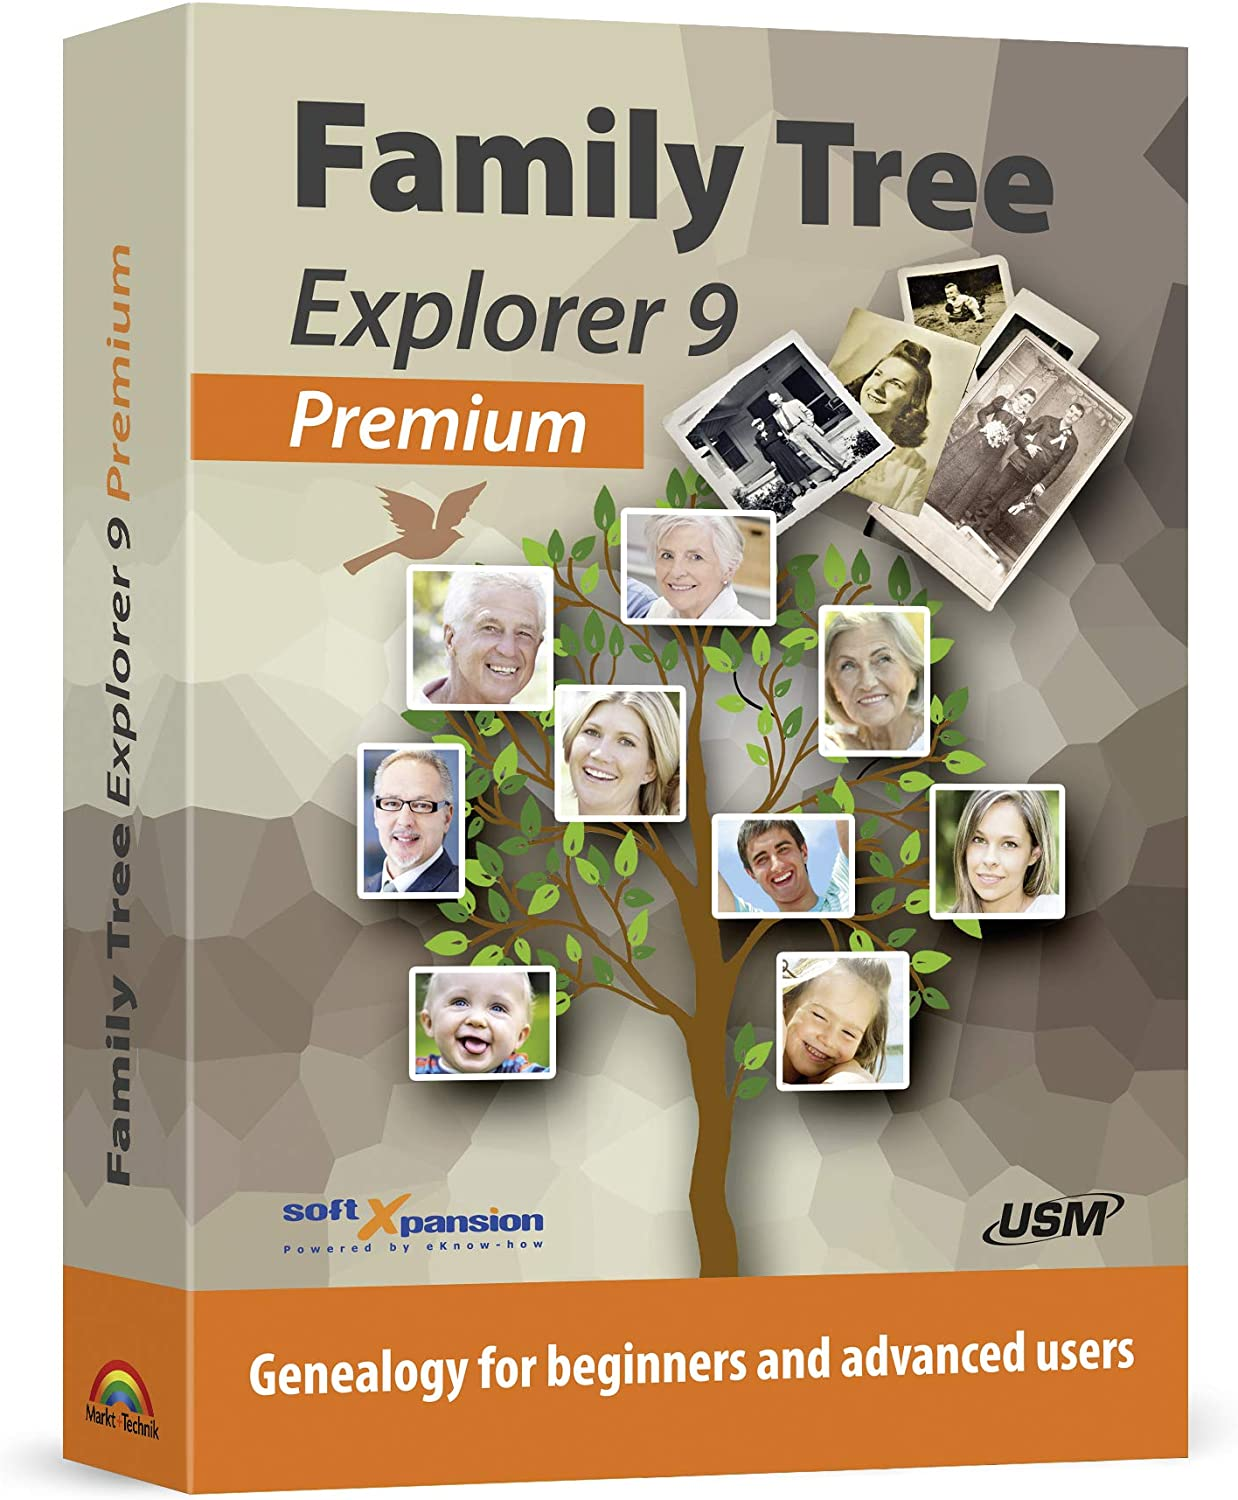 Family Tree Explorer 9 PREMIUM - Genealogy software and family tree maker for Windows 10, 8.1, 7 - compatible with the international GEDCOM format 71o2Bt5zTBcL